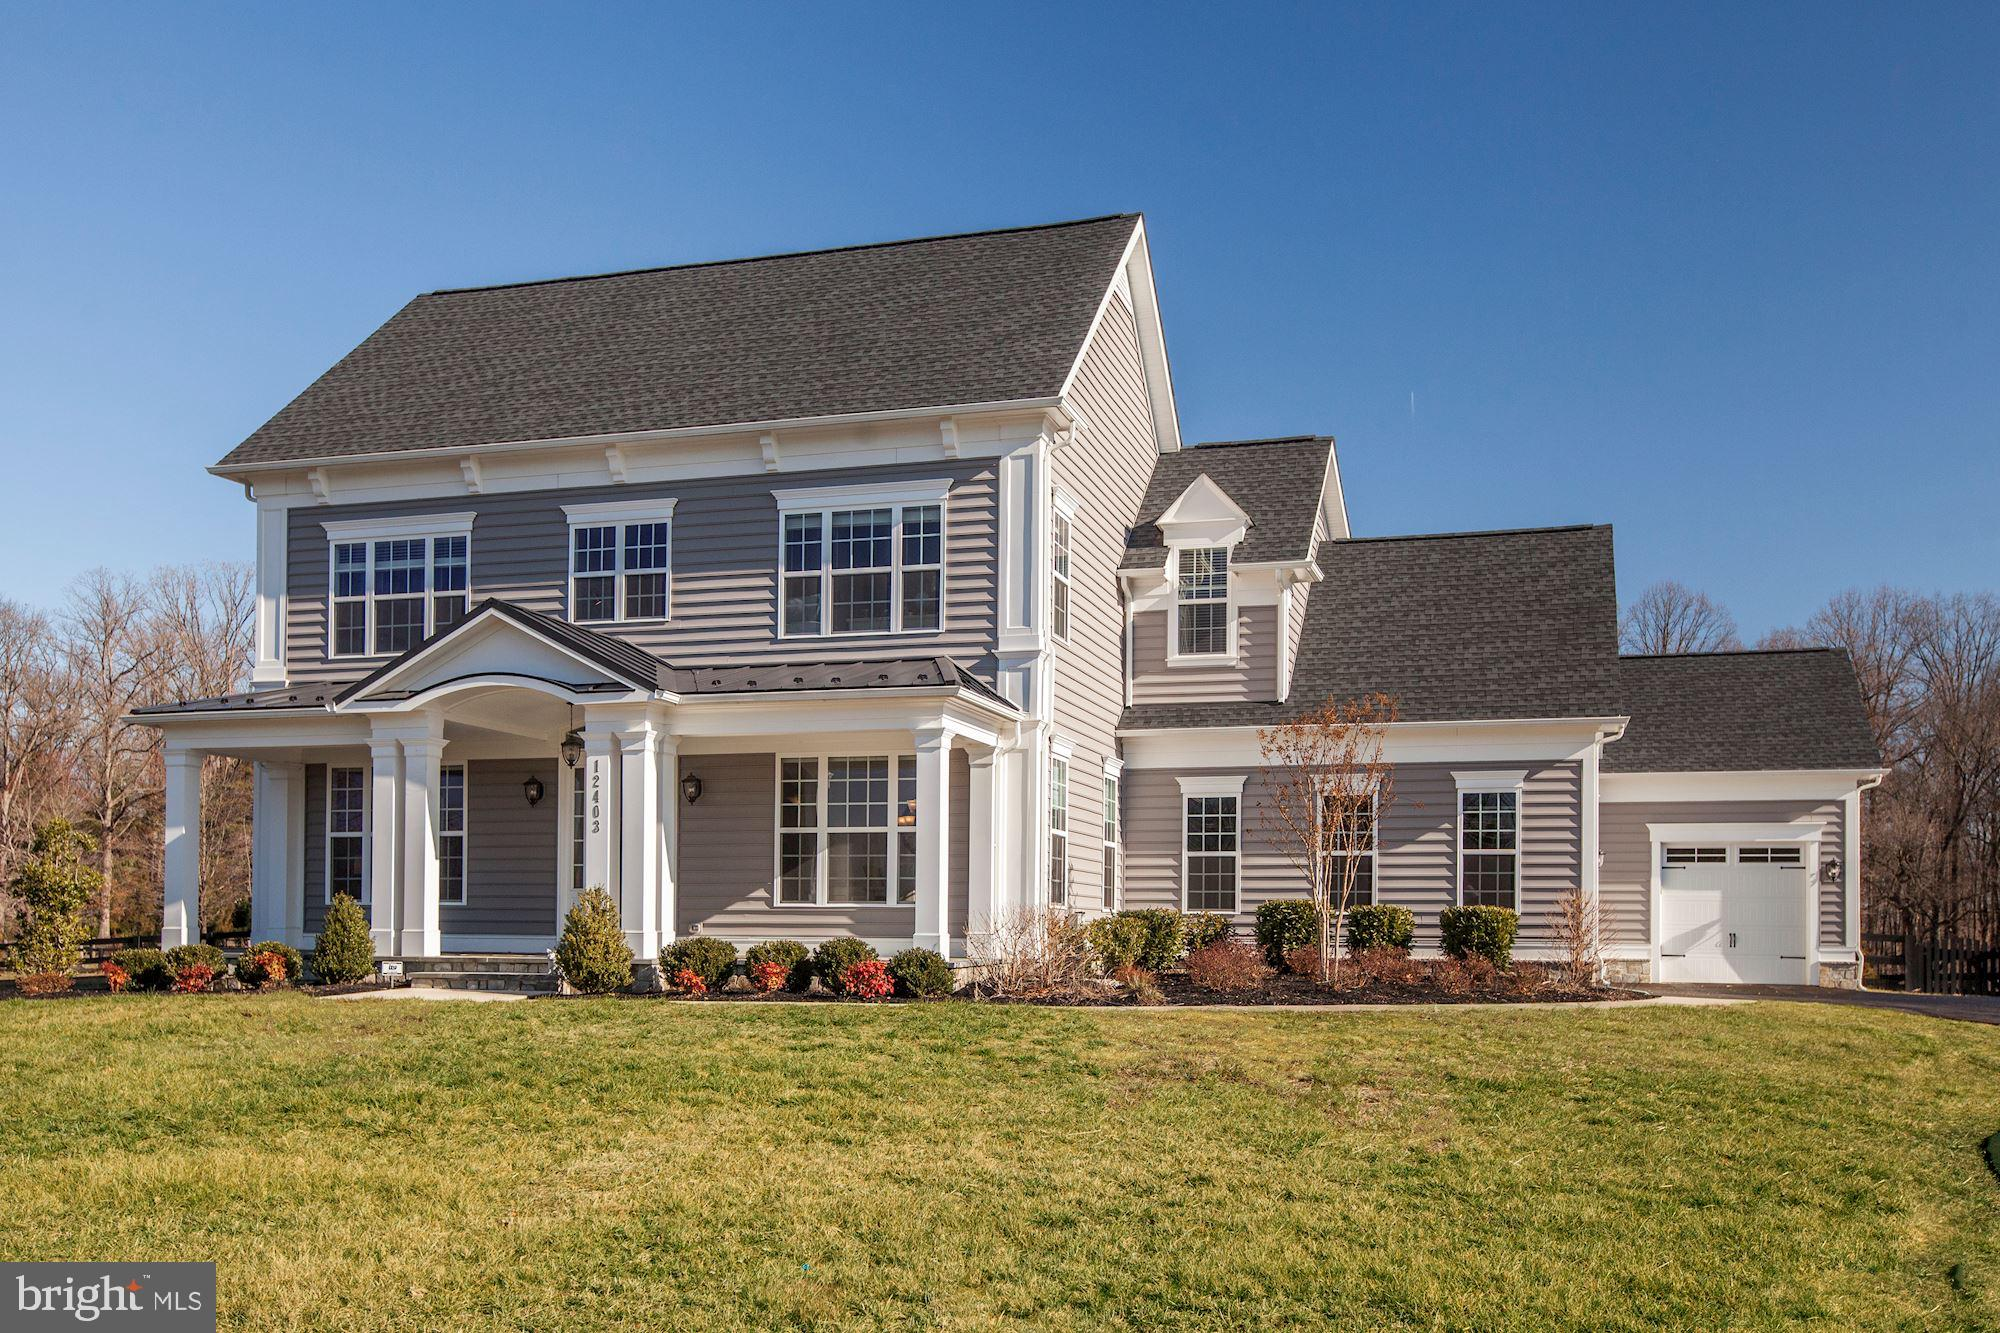 12403 ALL DAUGHTERS LANE, HIGHLAND, MD 20777